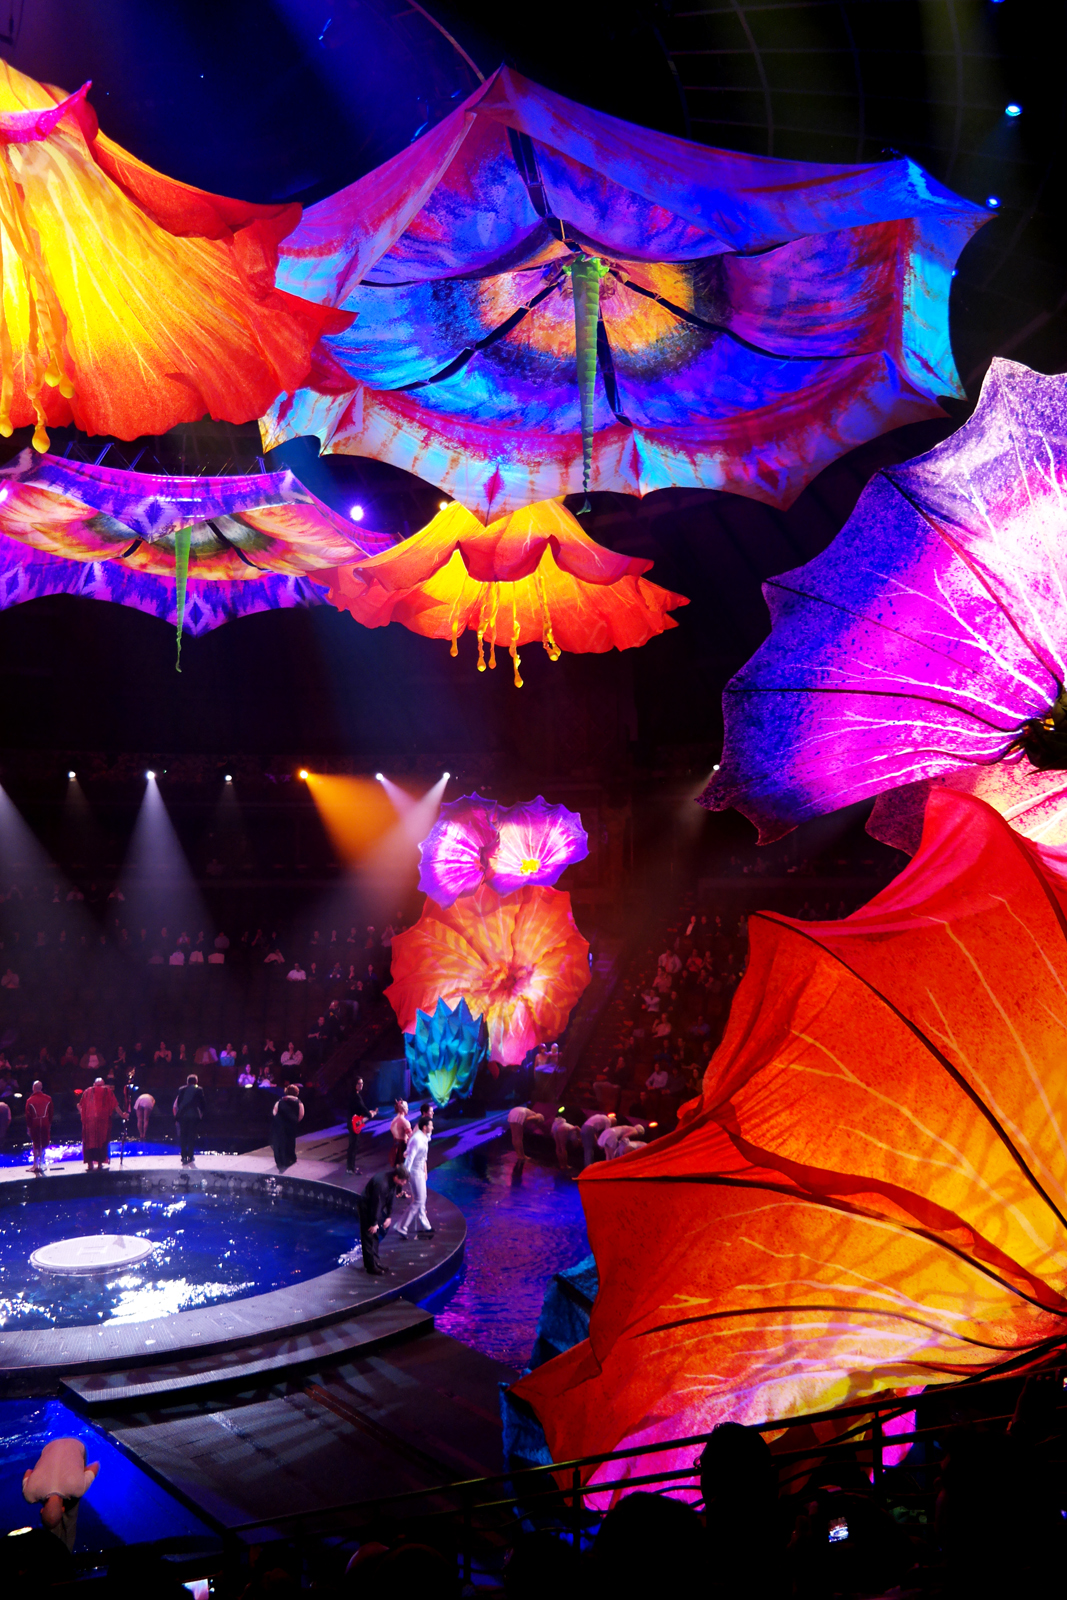 Le-Rêve-The-Dream-le-reve-best-production-show-wynn-las-vegas-Franco-Dragone-spectacle-flowers-end-of-the-show-imagelogger-photo-by-united-states-of-paris-blog